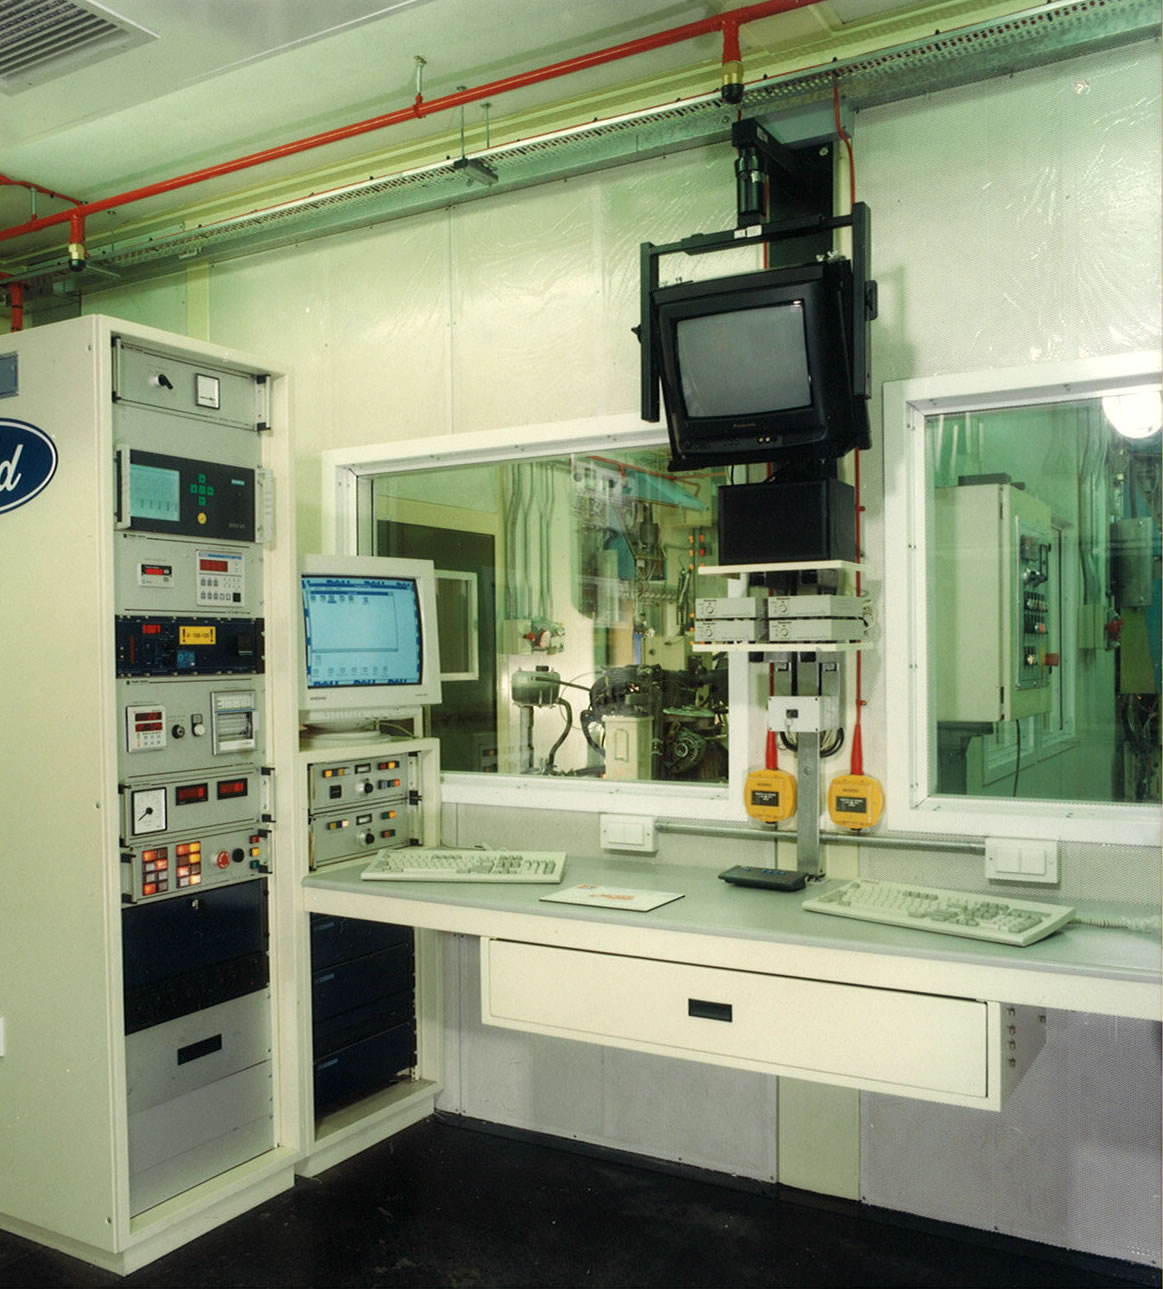 Acoustic Test Cell interior